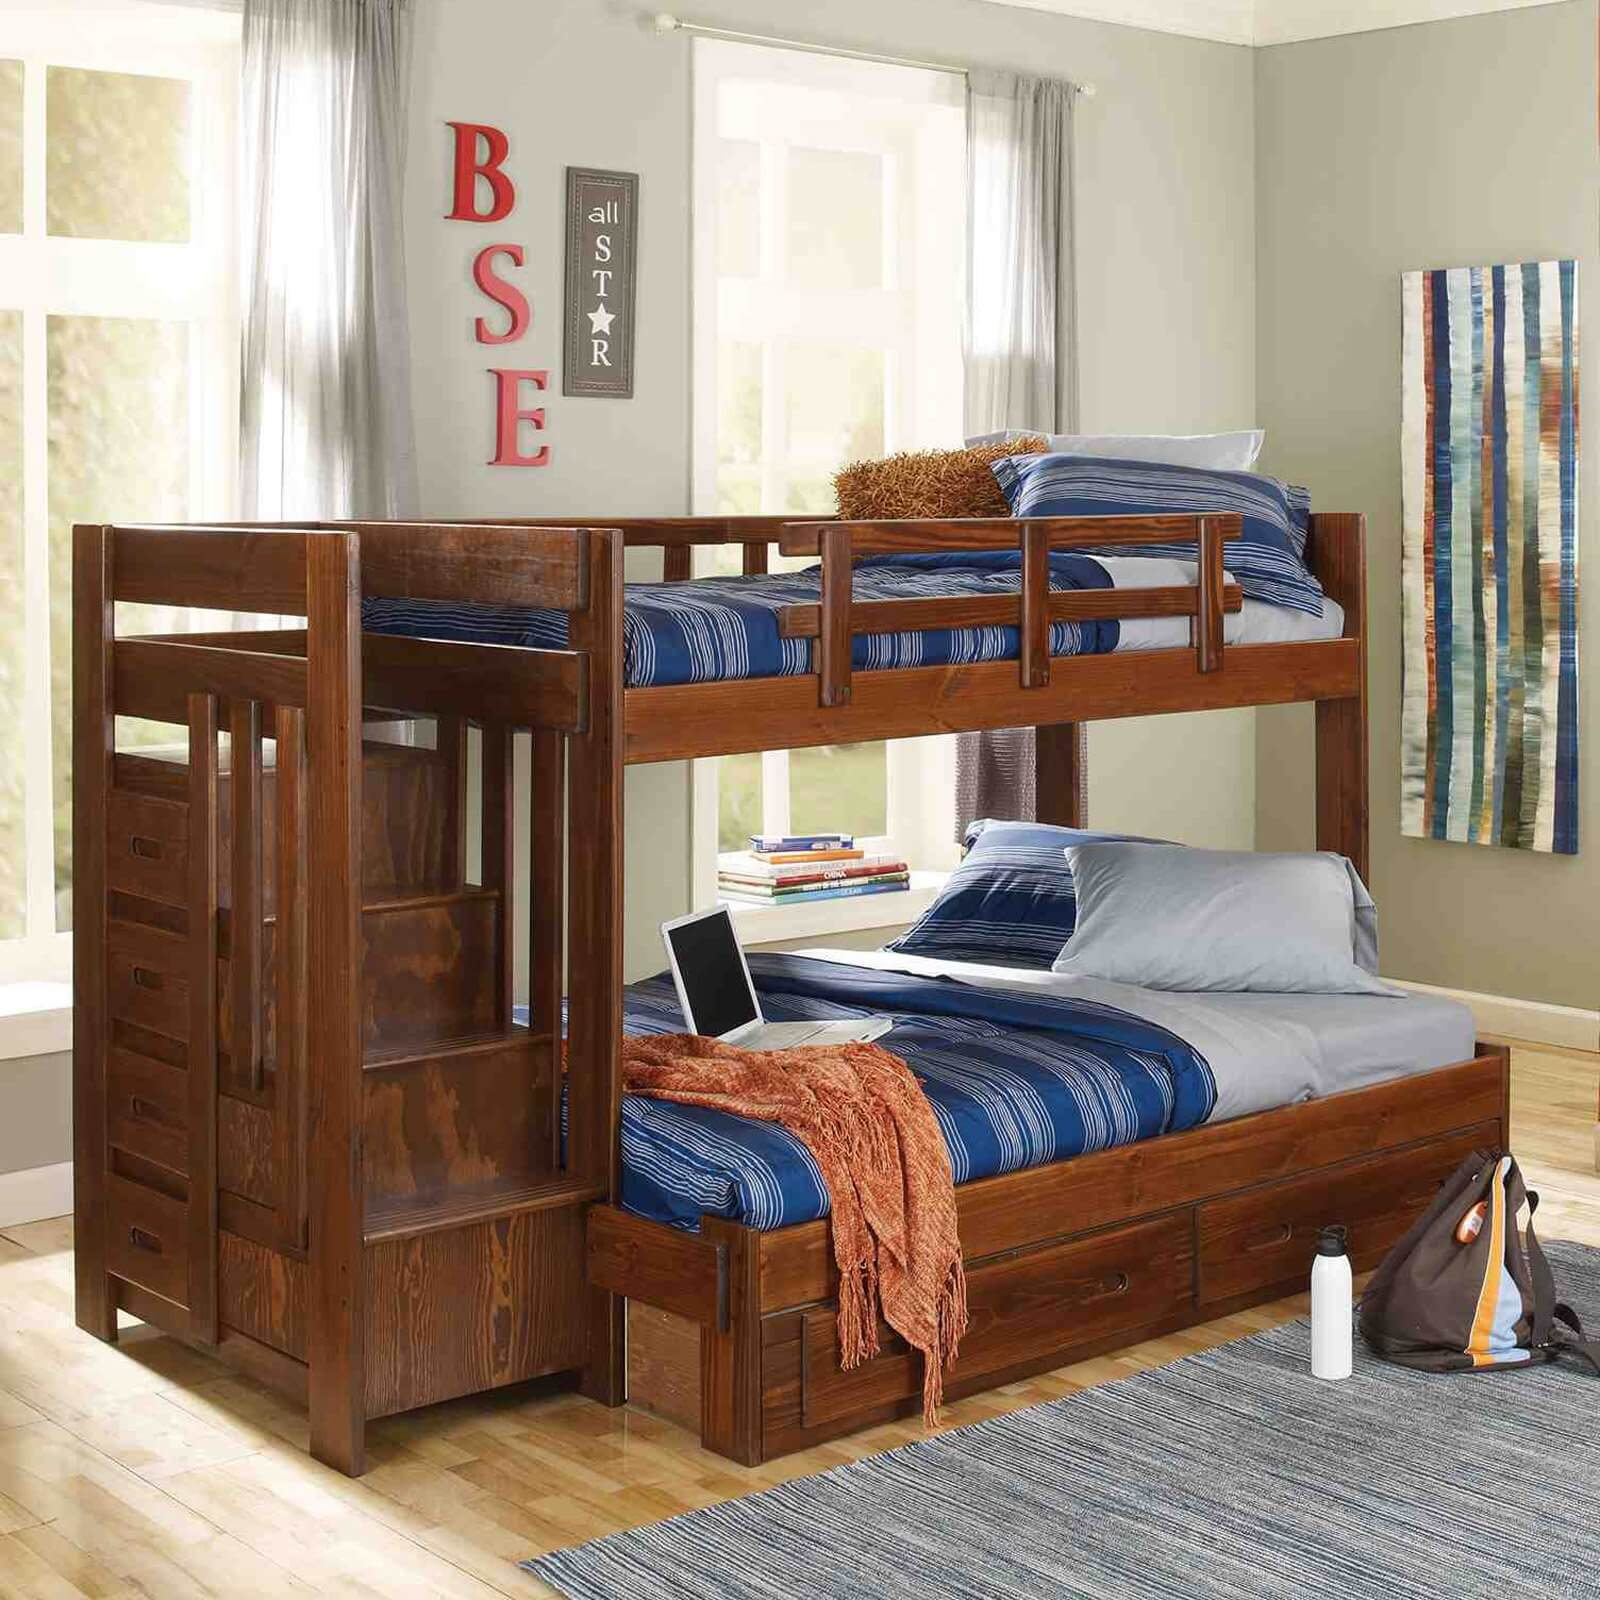 Advantages And Drawbacks Of Strong Wooden Loft Bed With Stairs Twin over Full Reversible Stair Bunk Bed